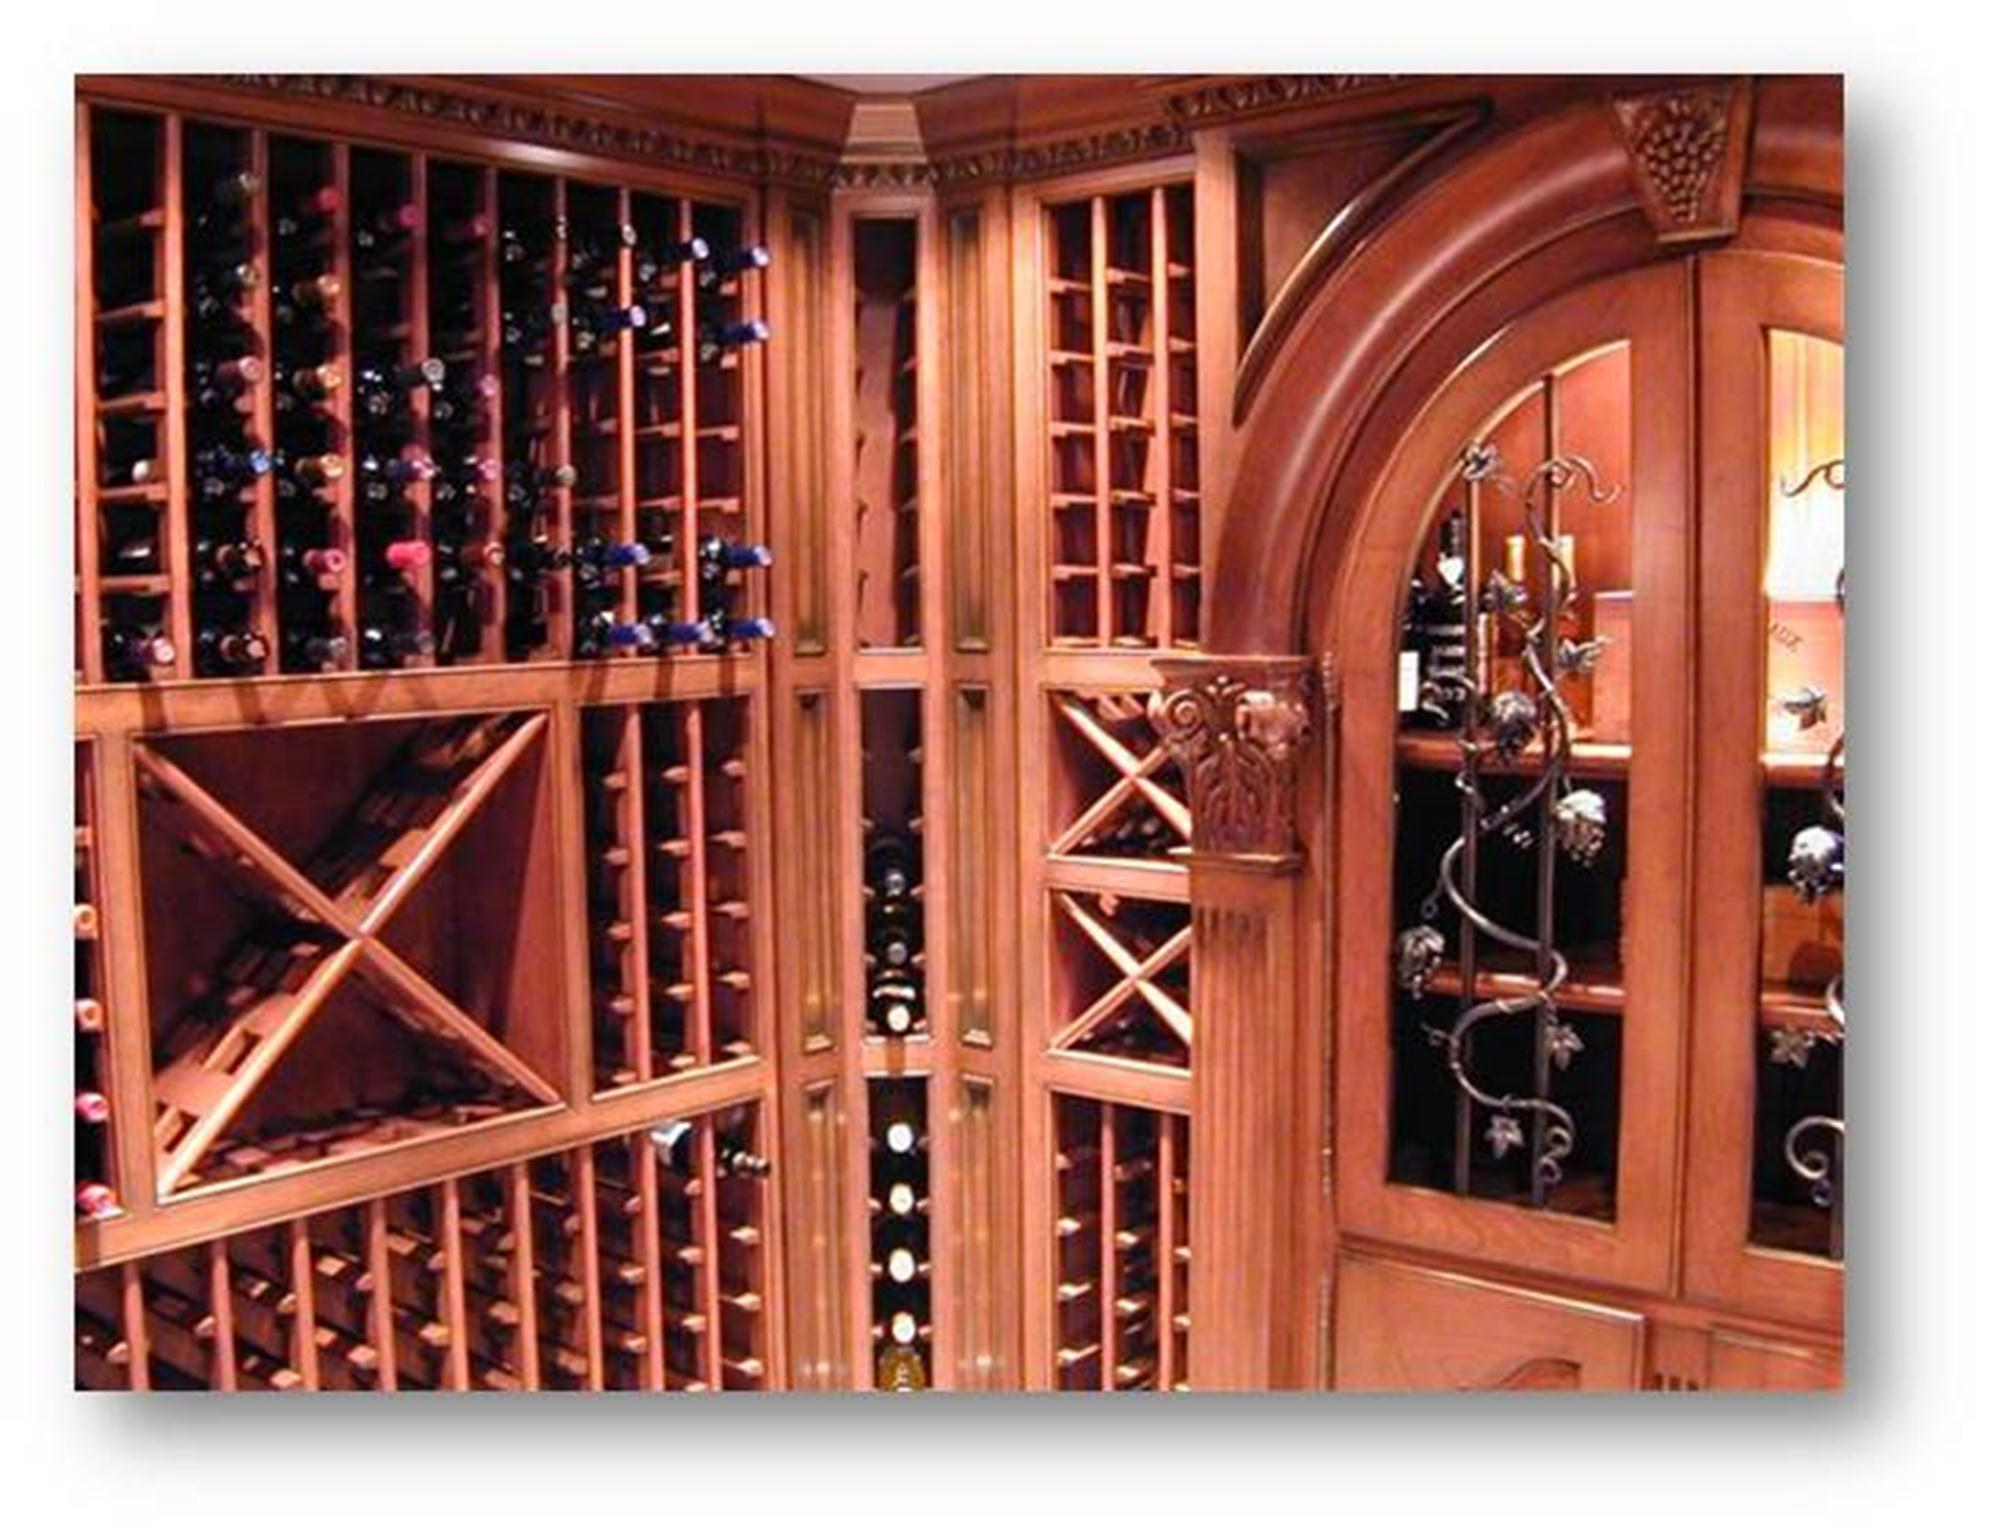 Wine cellar completed